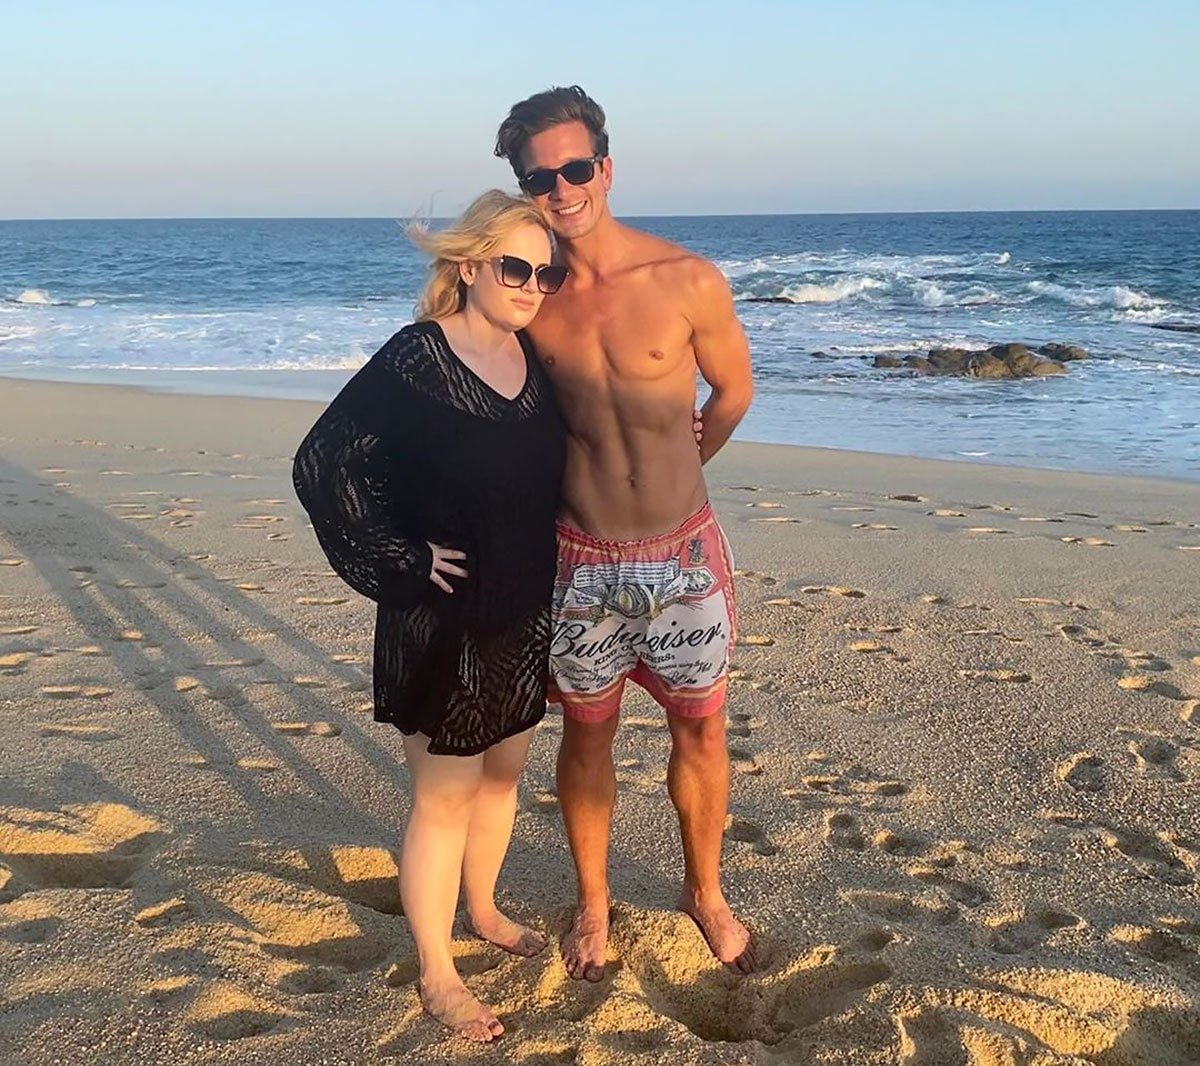 Rebel Wilson's Boyfriend Jacob Busch Had A Crush On Her Long Before Starting To Date – 'She's Very Much His Type,' Source Says!